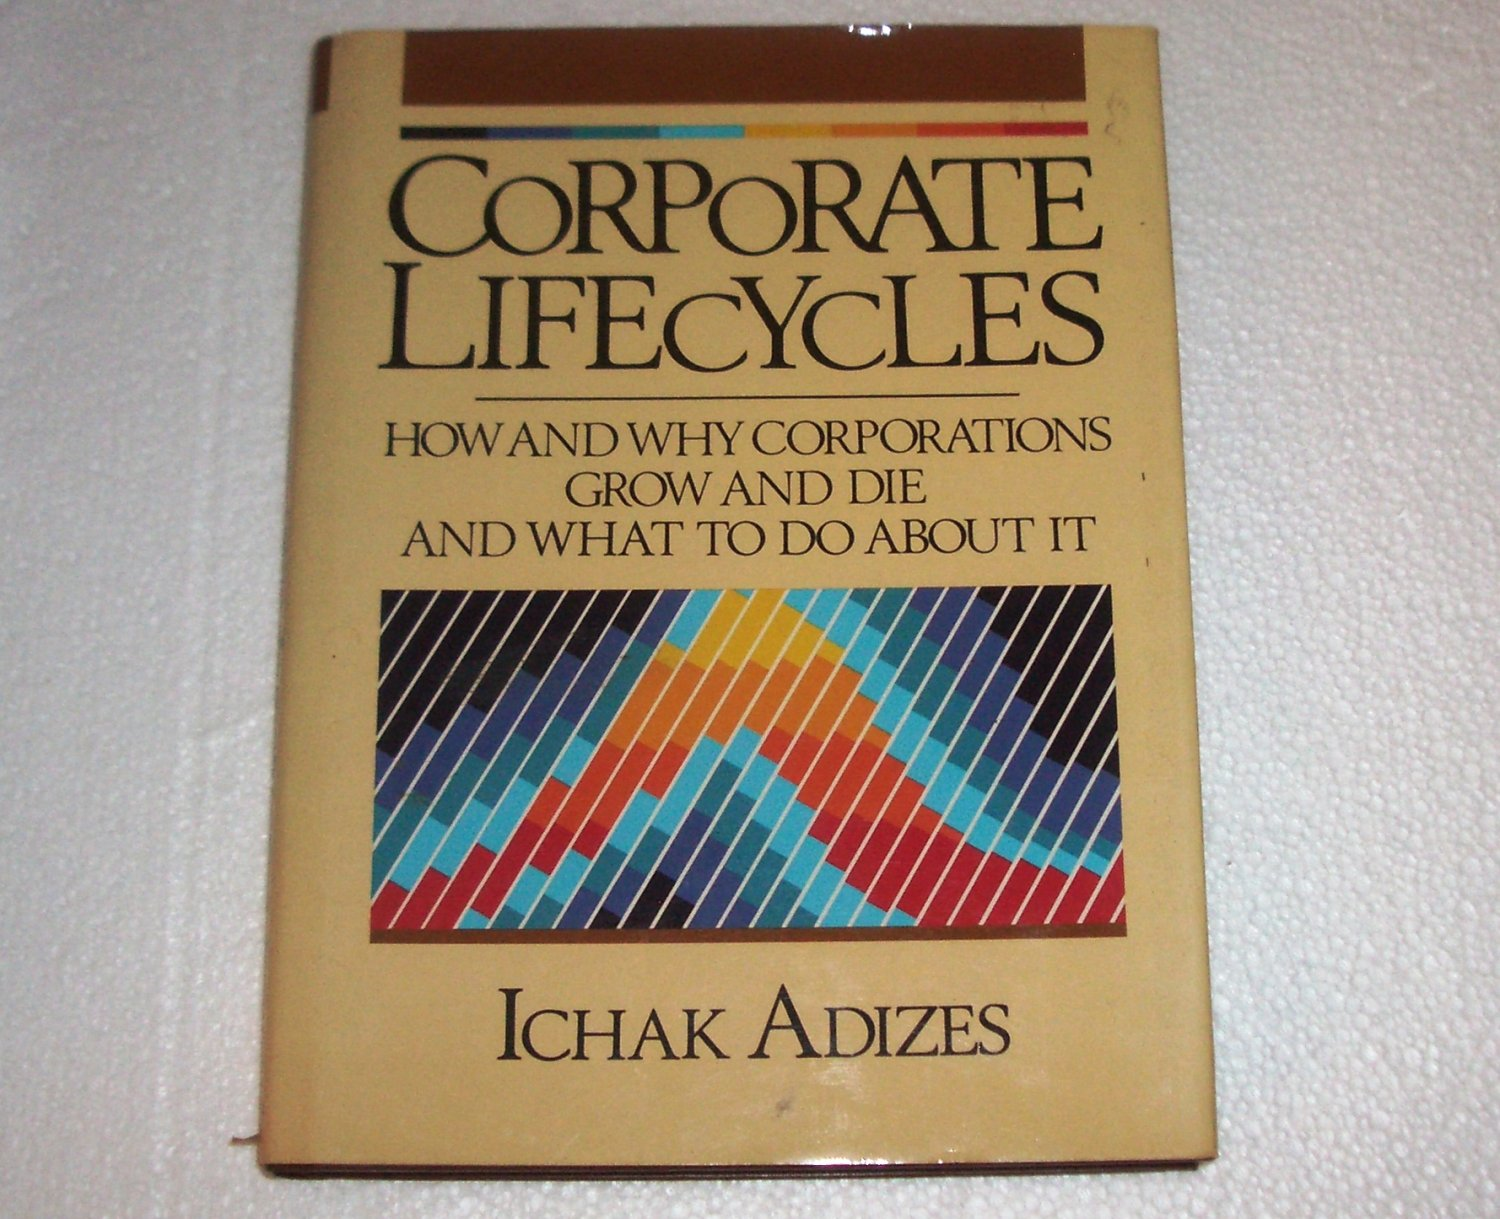 Corporate Lifecycles: How and why Corporations Grow and Die and What to Do about It by Ichak Adizes